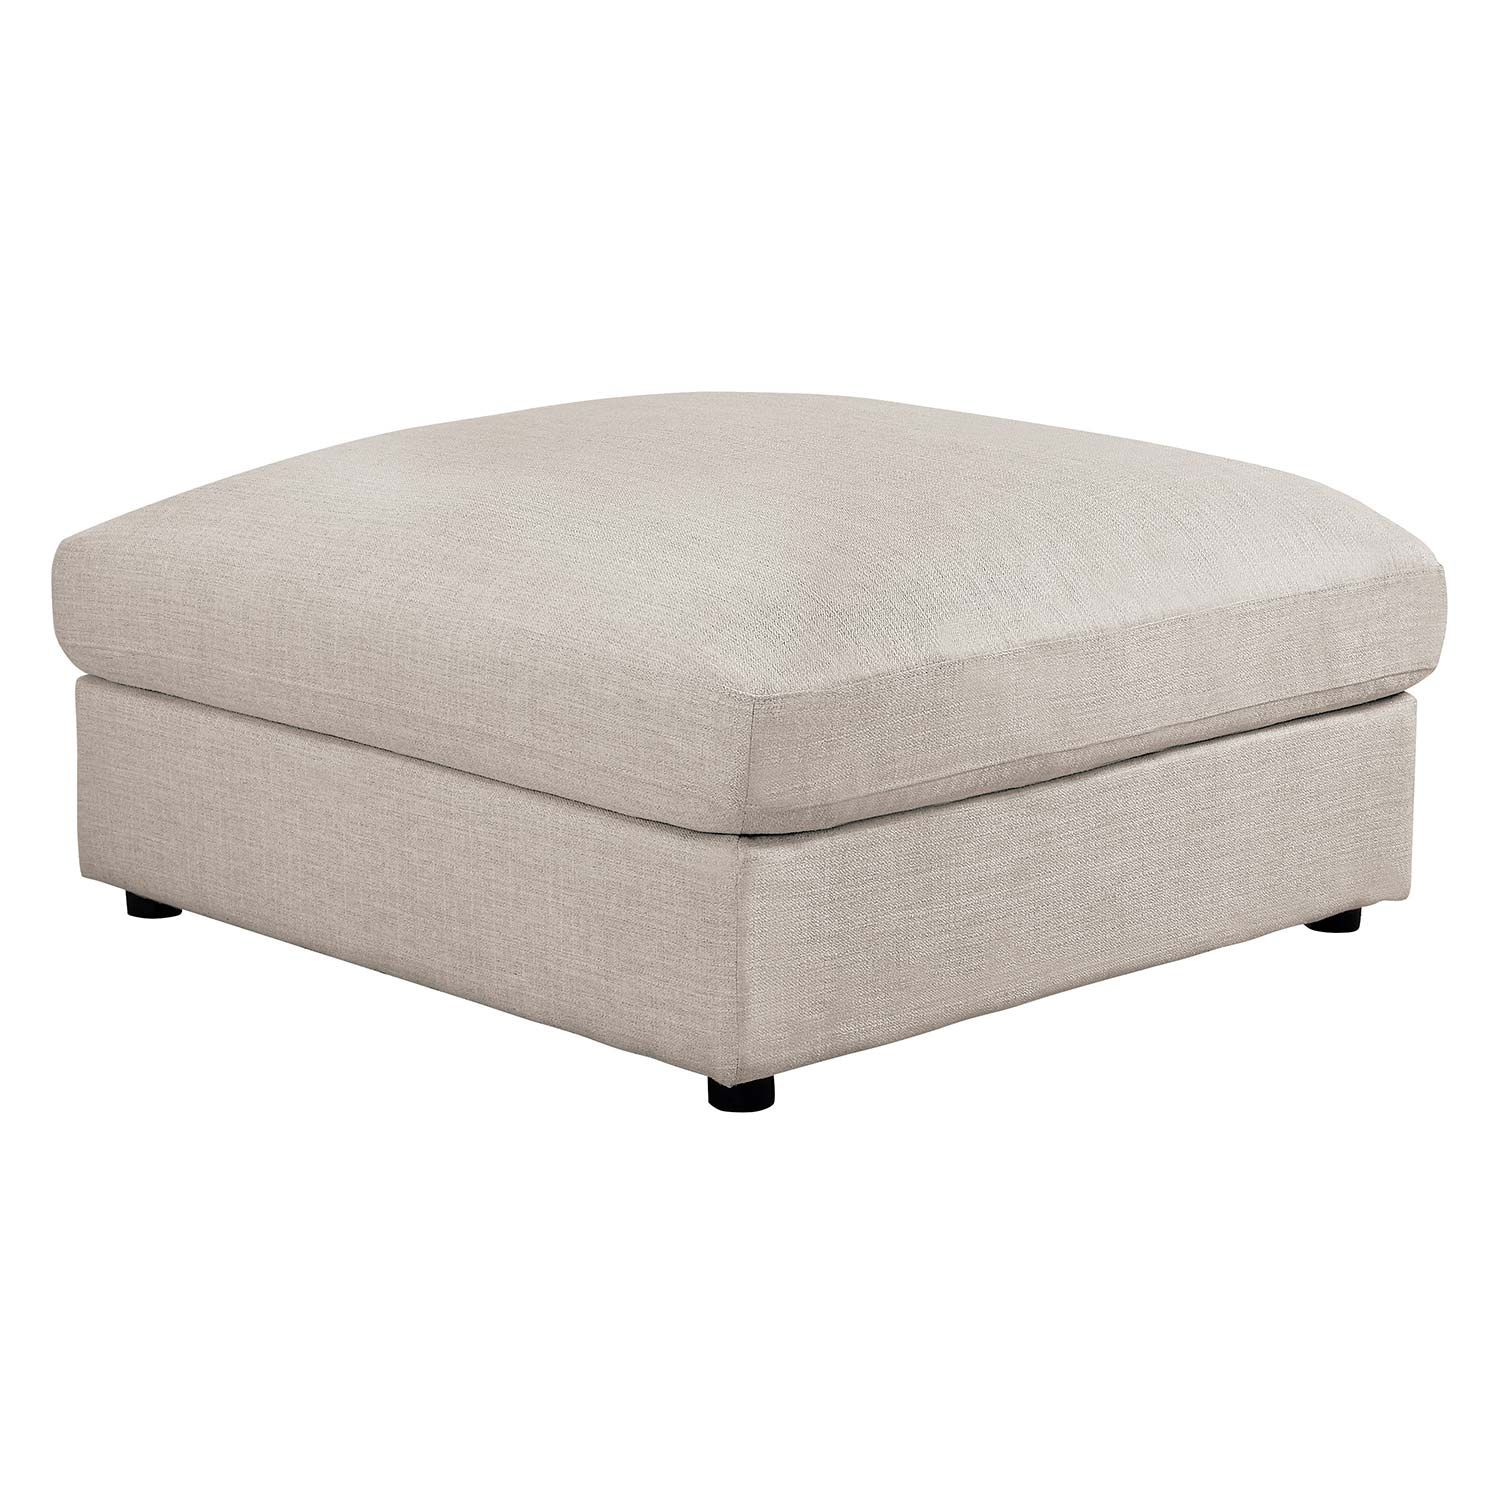 Homelegance Casoria Ottoman - Neutral